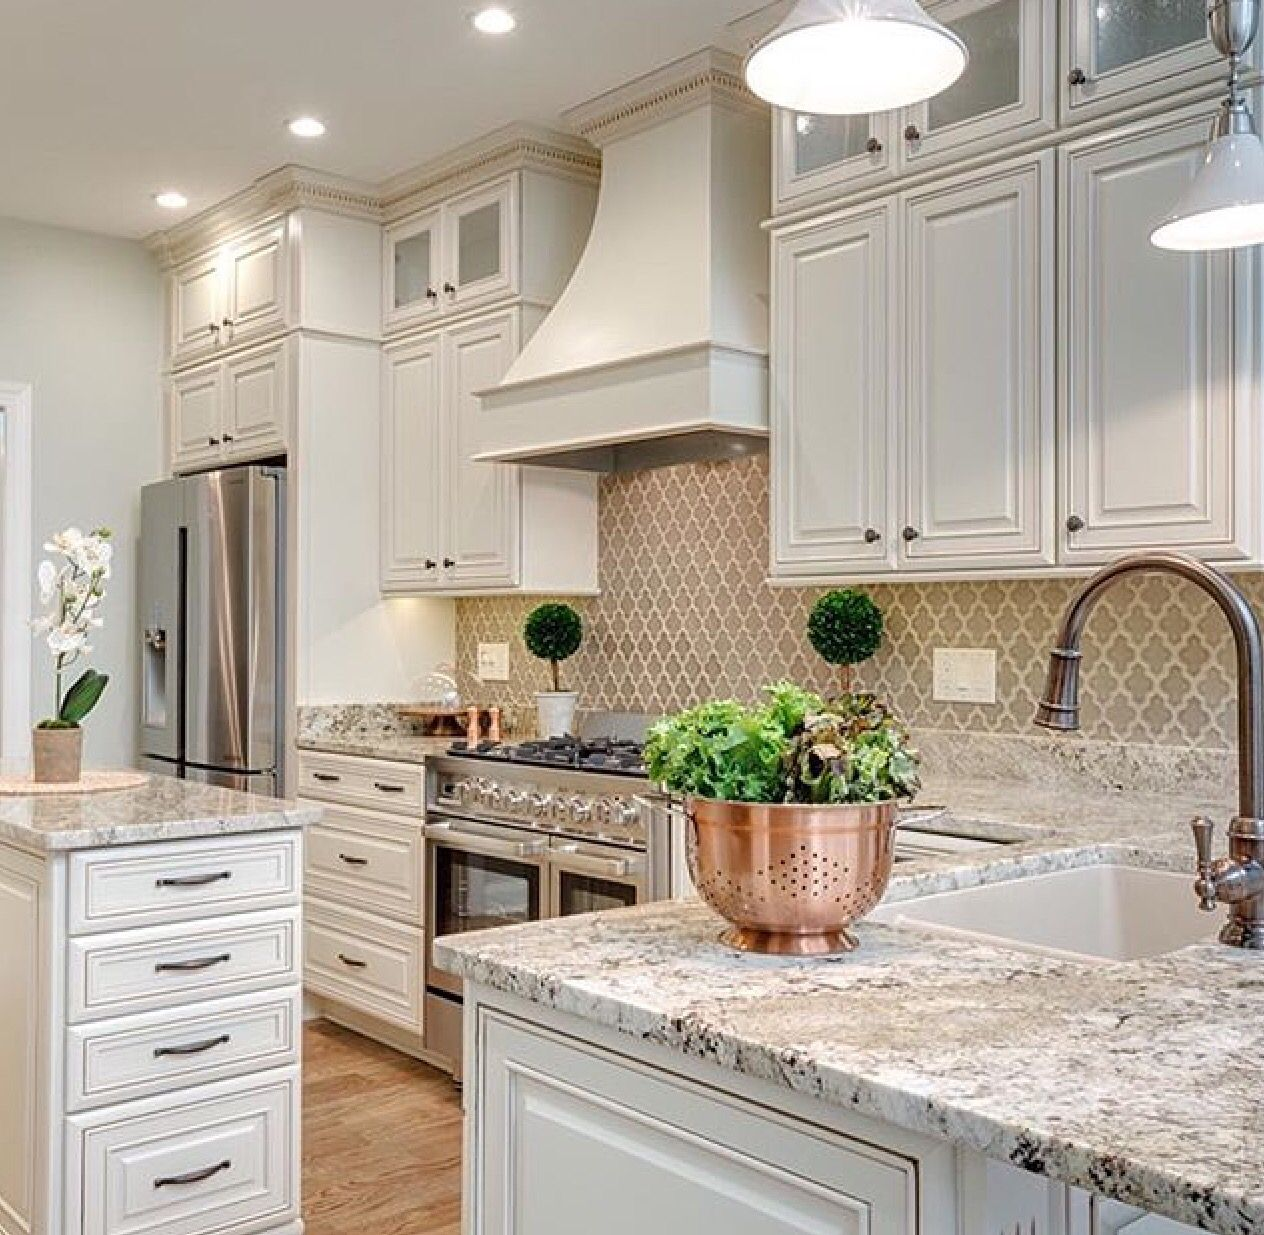 Good Color For Kitchen Cabinets: A Neutral Colored Kitchen Looks Clean And Fresh. The